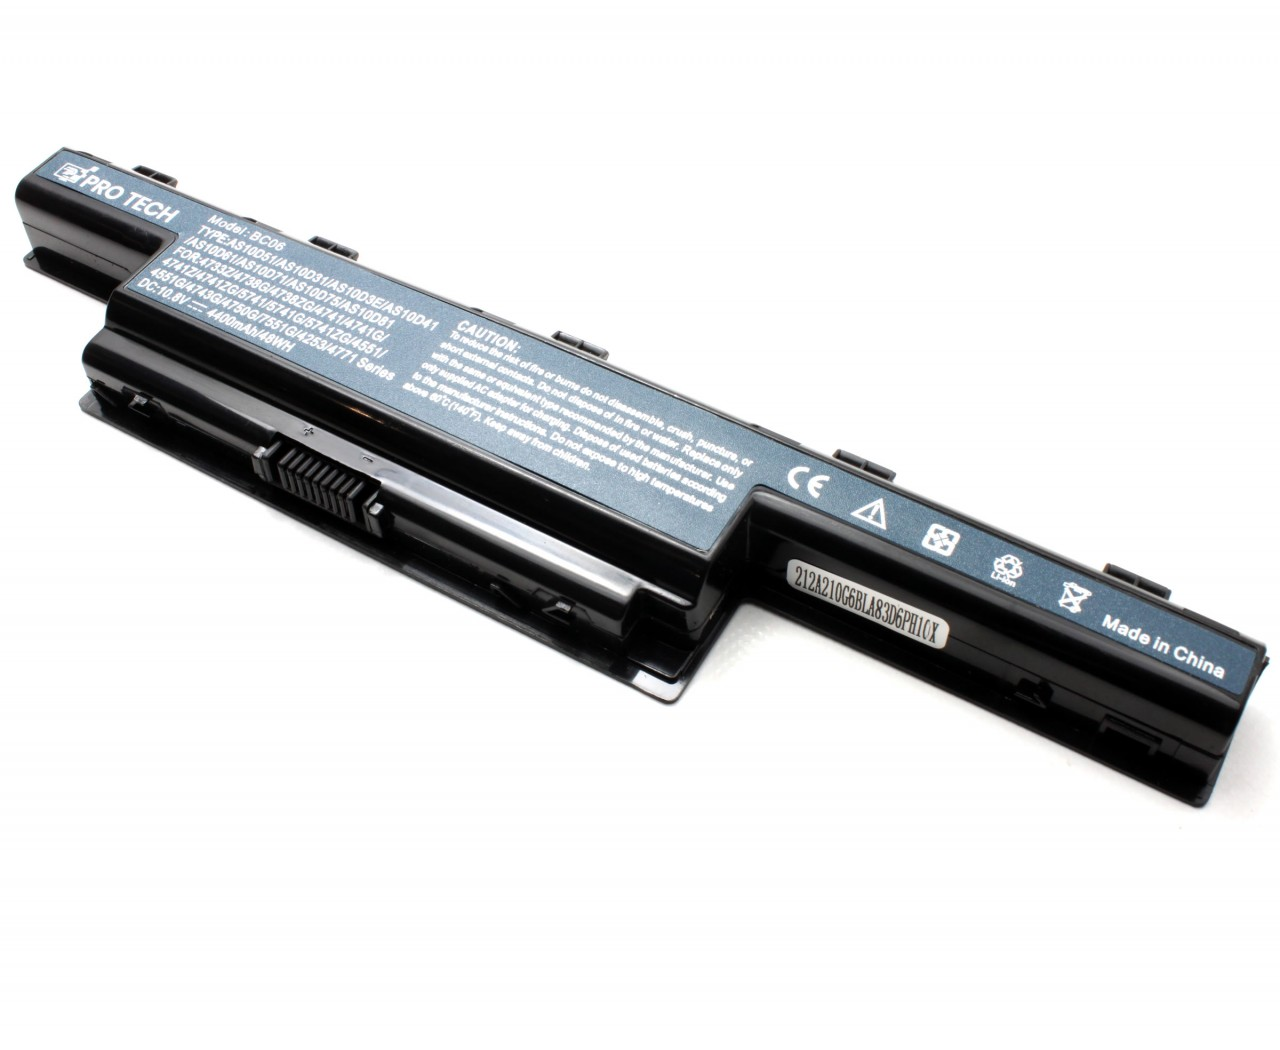 Baterie Packard Bell EasyNote LS13 6 celule imagine powerlaptop.ro 2021